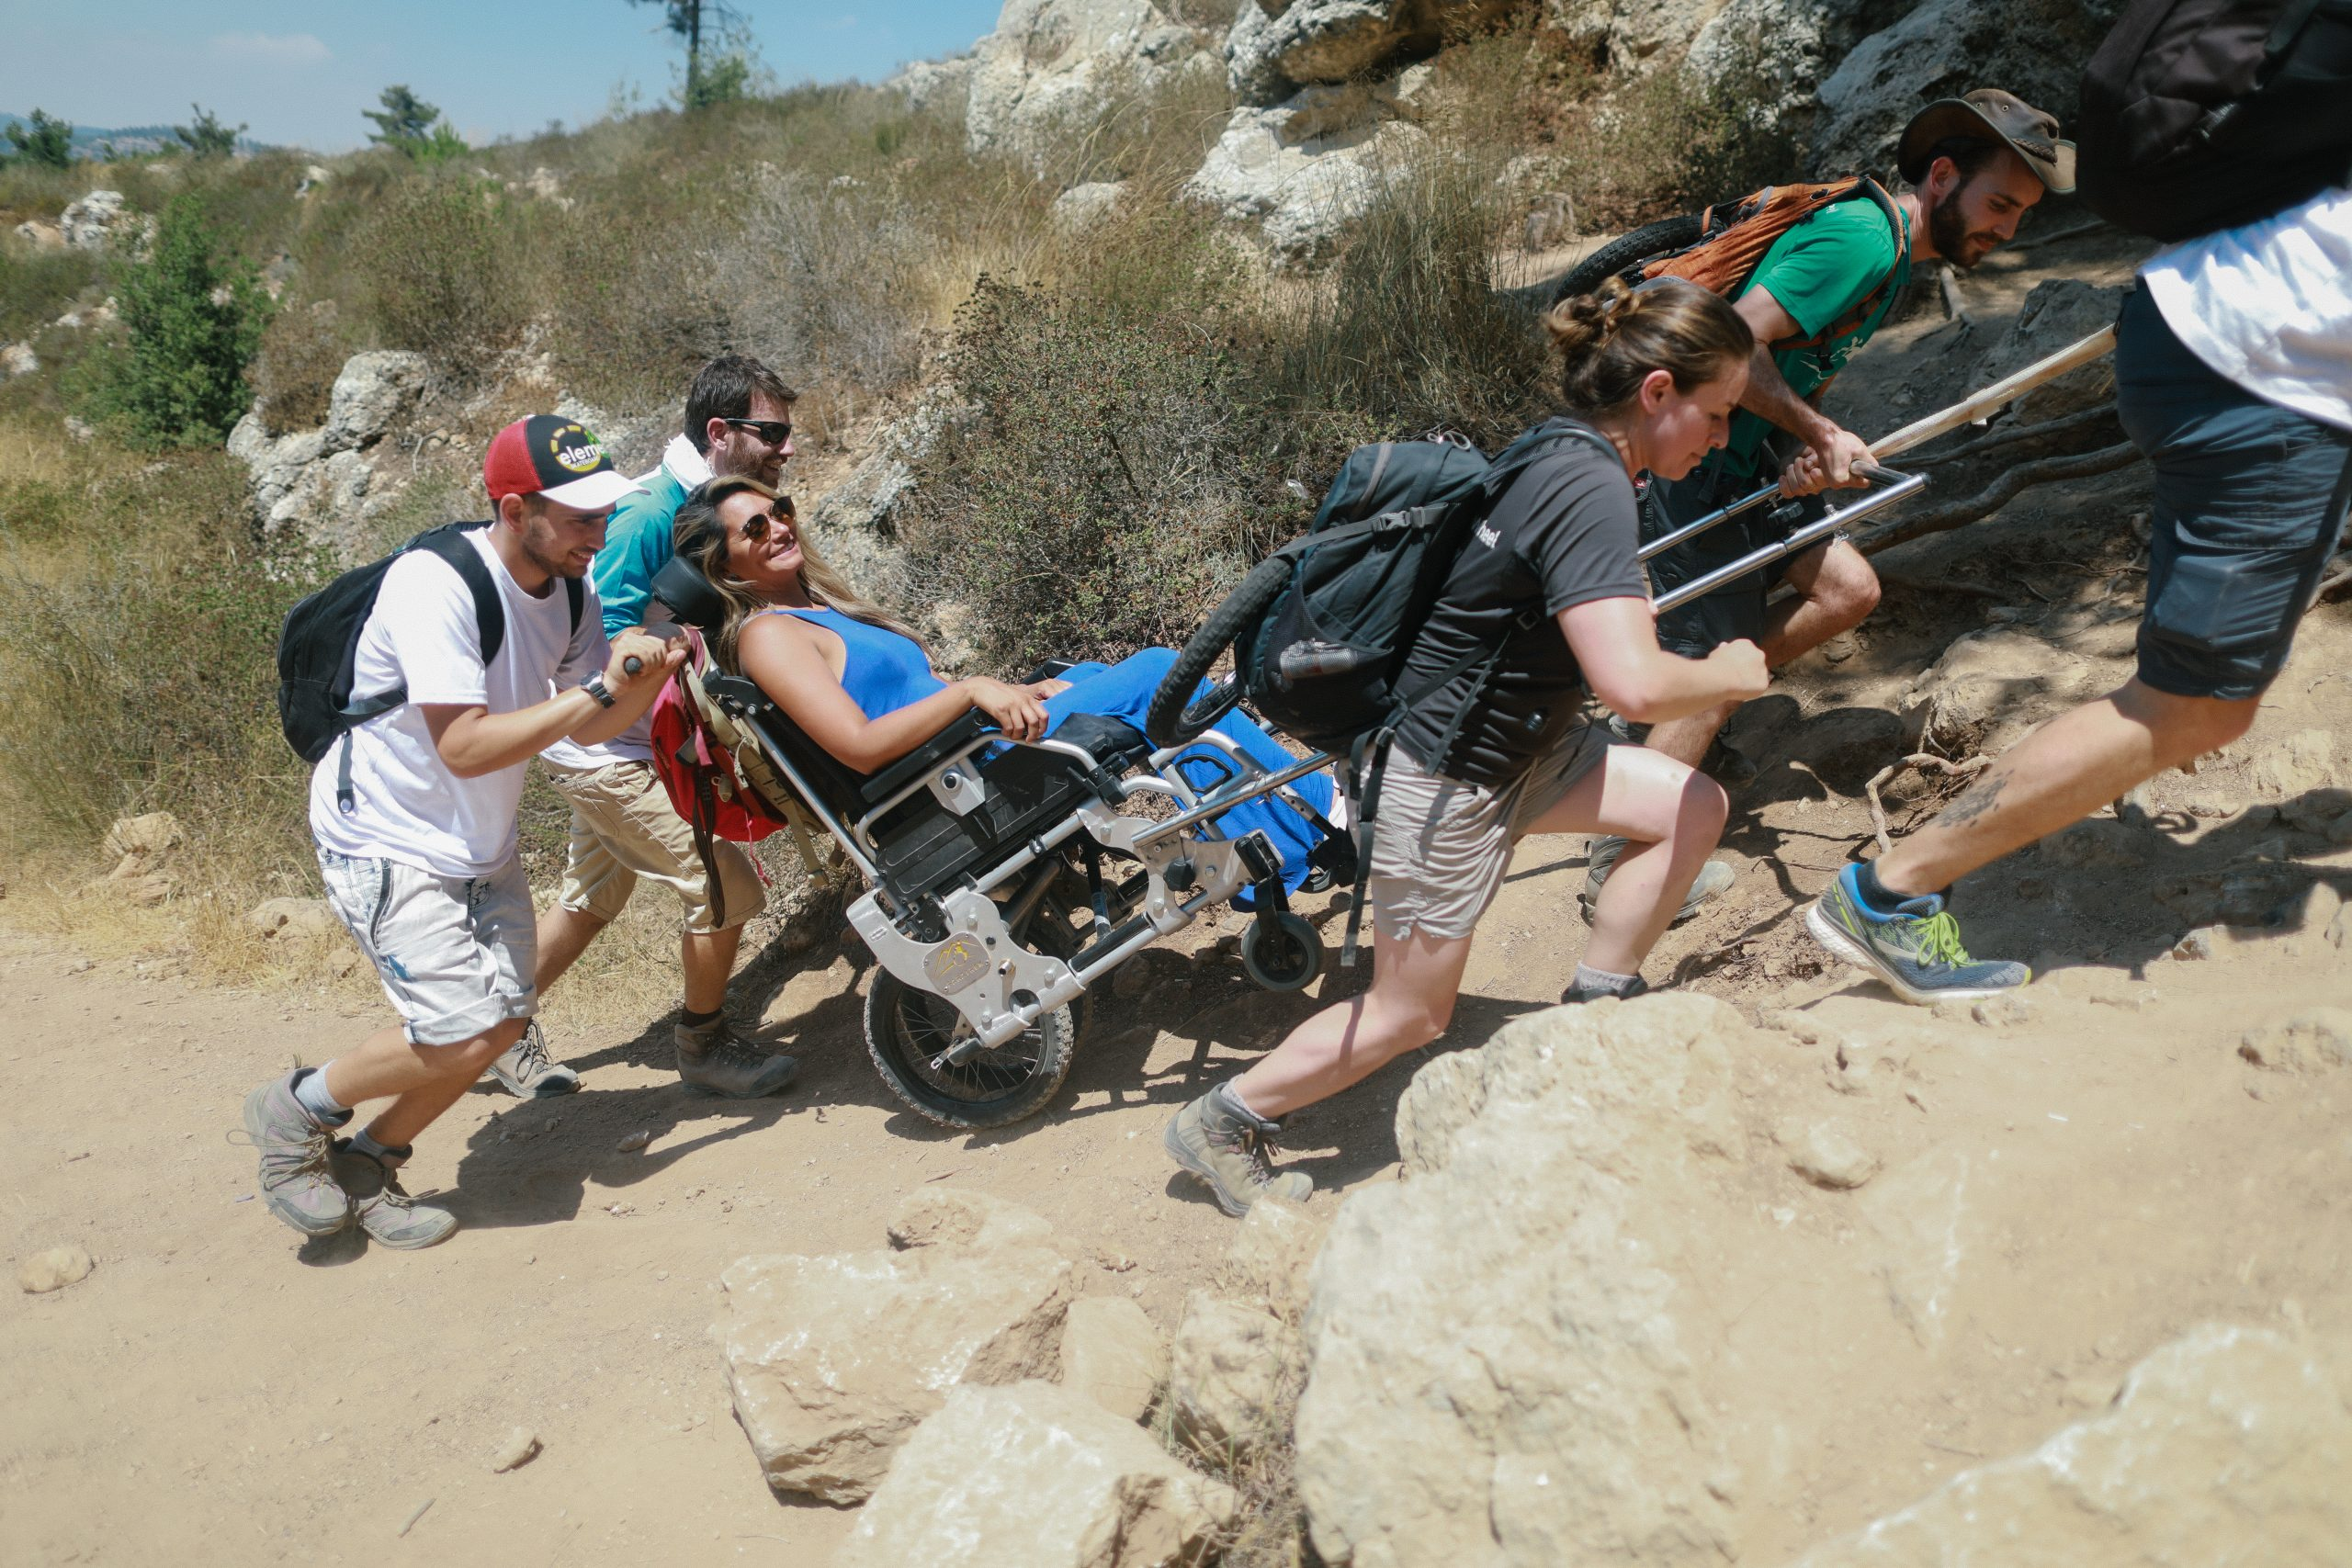 """<img src=""""Hikers assisting someone in a Trekker.jpg"""" alt=""""Group of hikers helping to get someone in a Trekker up a slope"""">"""